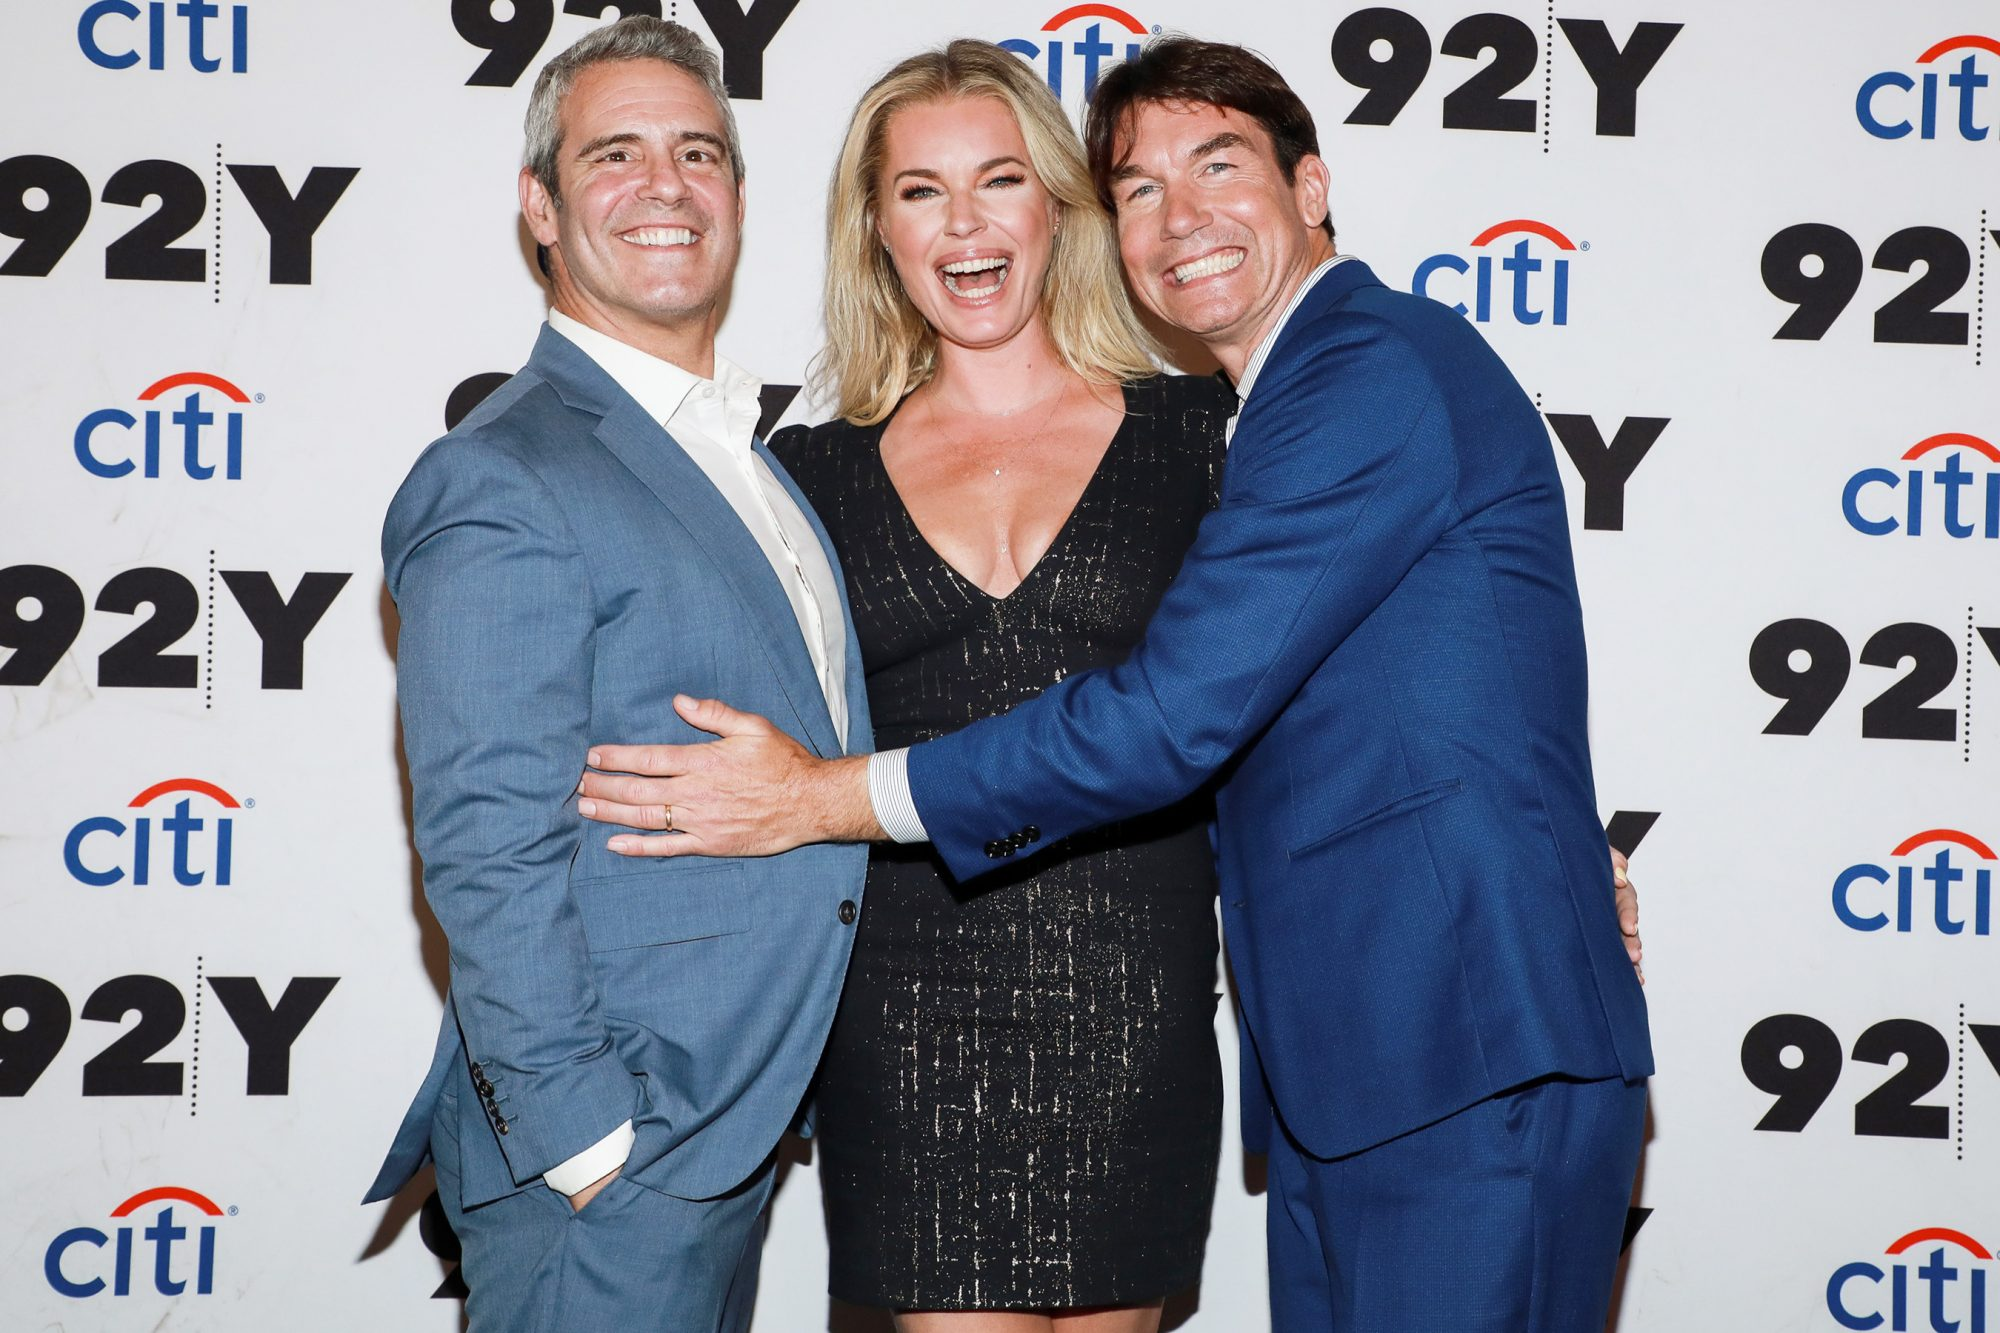 Andy Cohen, Rebecca Romijn and Jerry O'Connell